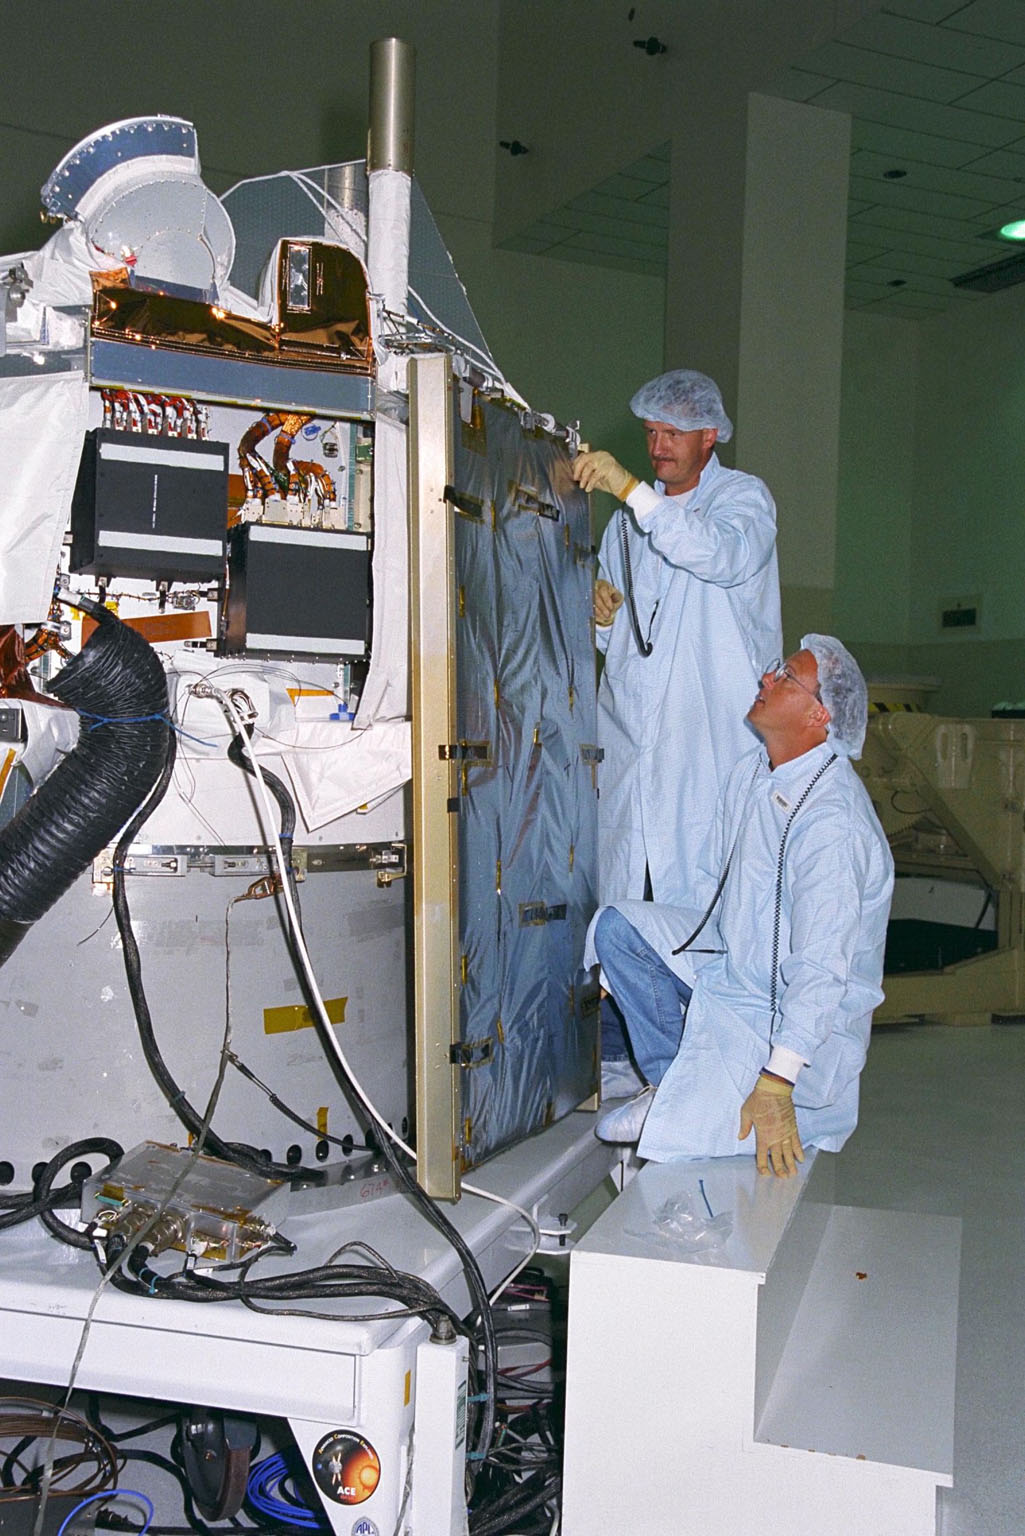 Applied Physics Laboratory Engineer Cliff Willey (kneeling) and Engineering Assistant Jim Hutcheson from Johns Hopkins University install solar array panels on the Advanced Composition Explorer (ACE) in KSC?s Spacecraft Assembly and Encapsulation Facility-II. Scheduled for launch on a Delta II rocket from Cape Canaveral Air Station on Aug. 25, ACE will study low-energy particles of solar origin and high-energy galactic particles for a better understanding of the formation and evolution of the solar system as well as the astrophysical processes involved. The ACE observatory will be placed into an orbit almost a million miles (1.5 million kilometers) away from the Earth, about 1/100 the distance from the Earth to the Sun. The collecting power of instrumentation aboard ACE is at least 100 times more sensitive than anything previously flown to collect similar data by NASA